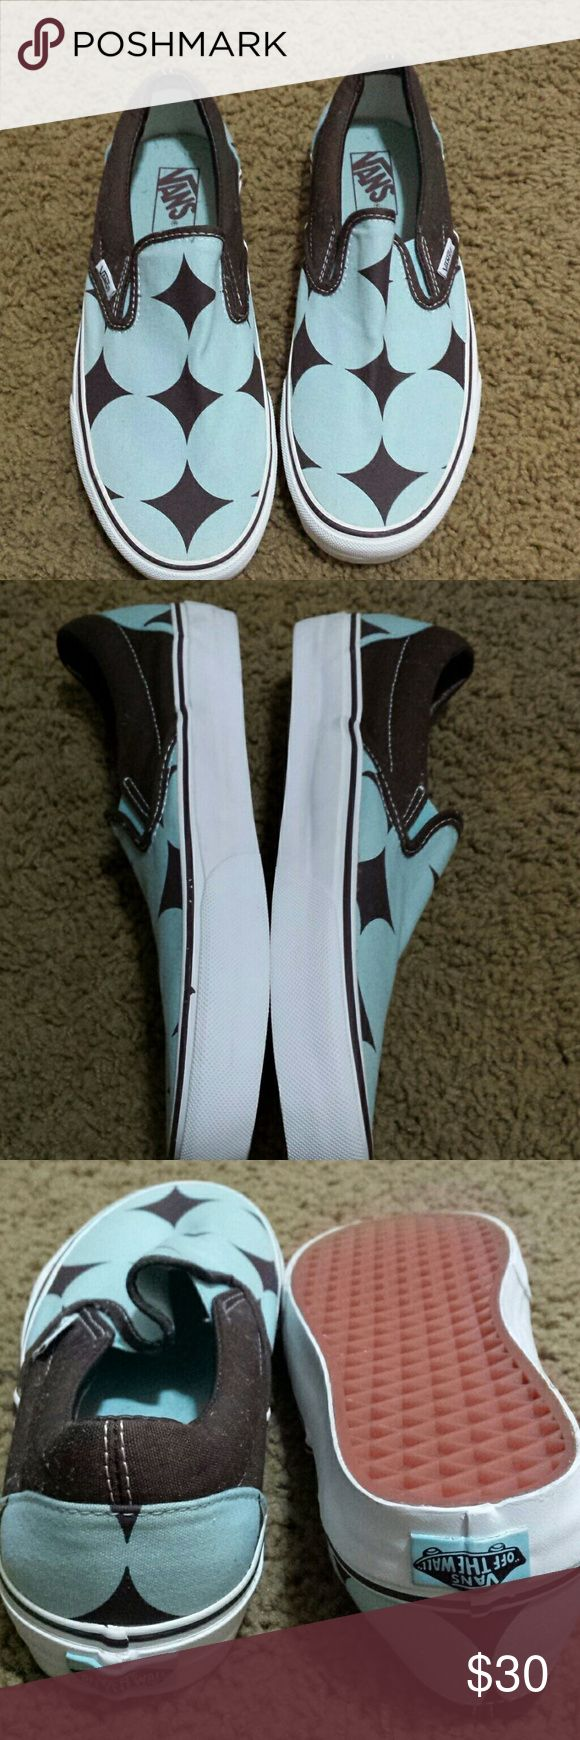 Final Sale Never Worn Slip On Vans Turquoise and brown, no box vans  Shoes Sneakers